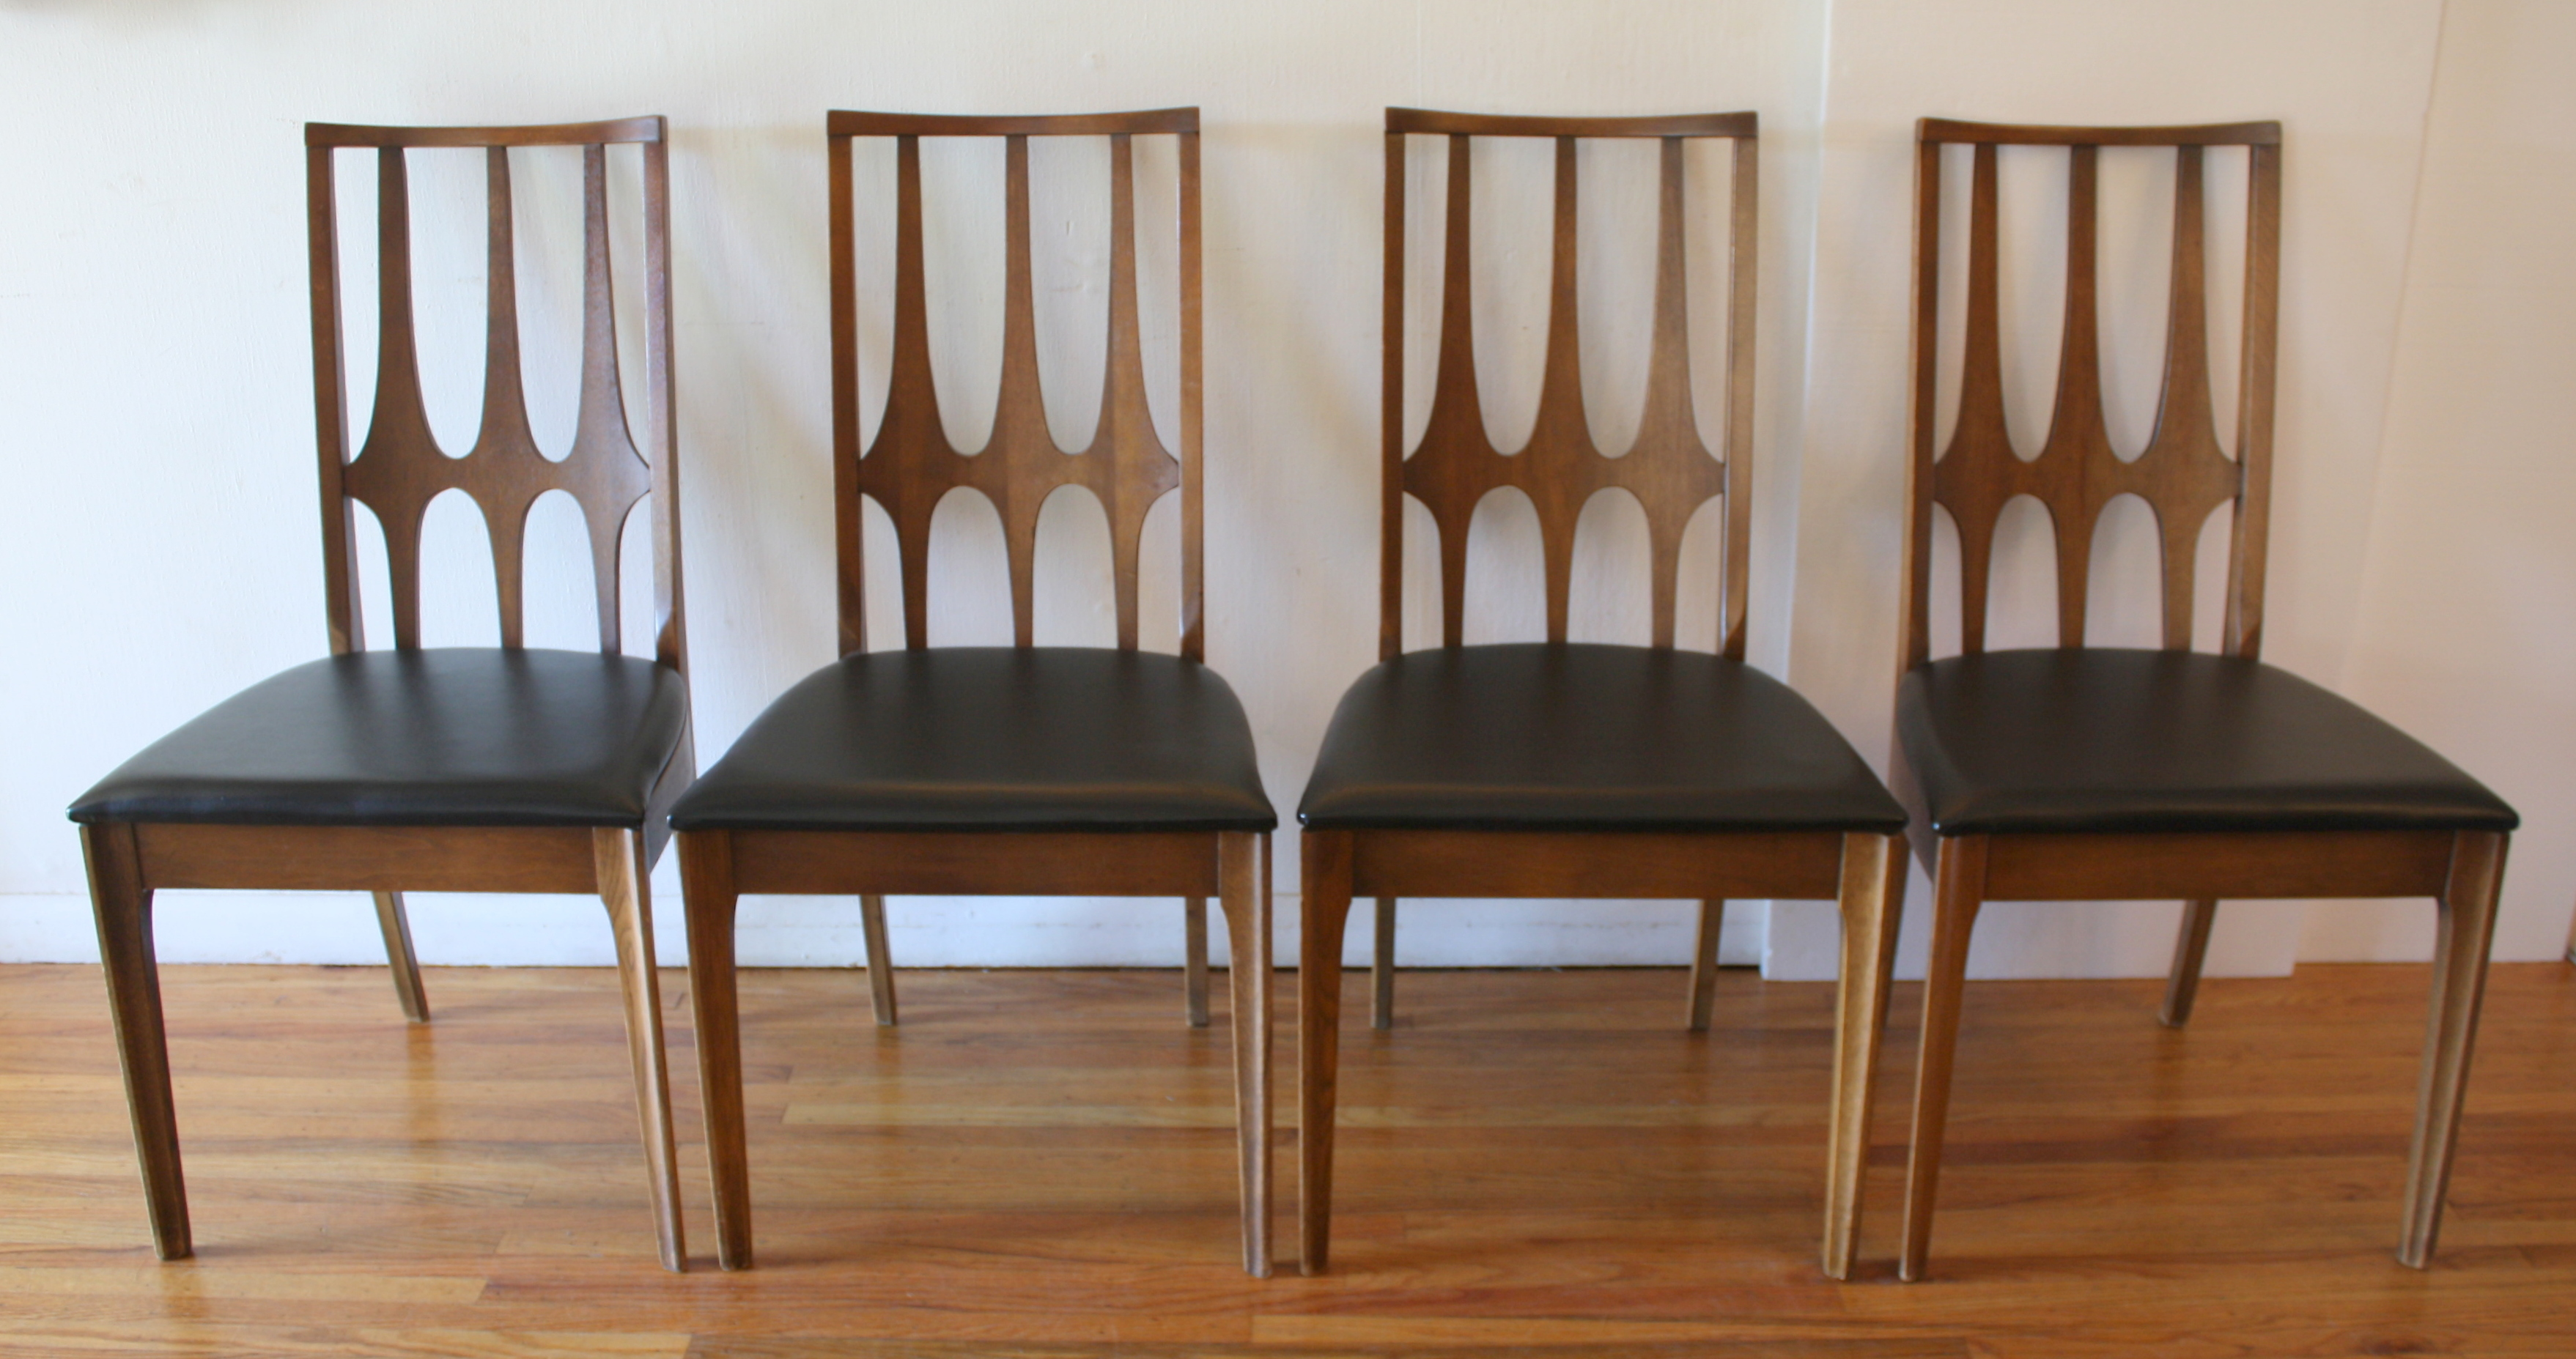 Brasilia chairs.JPG